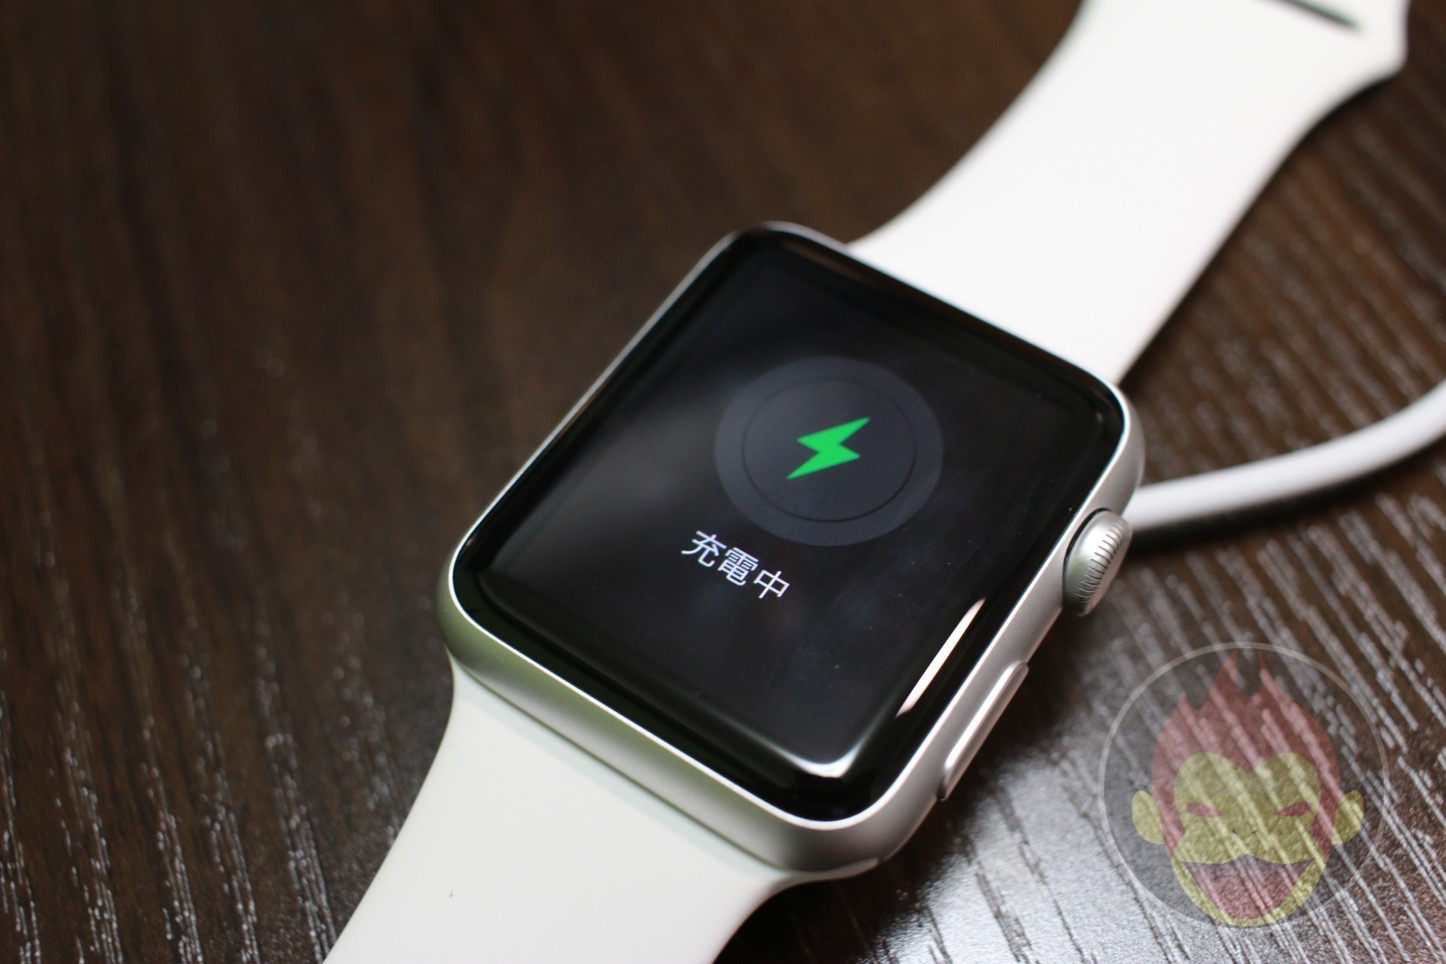 Apple-Watch-Charging-01.JPG